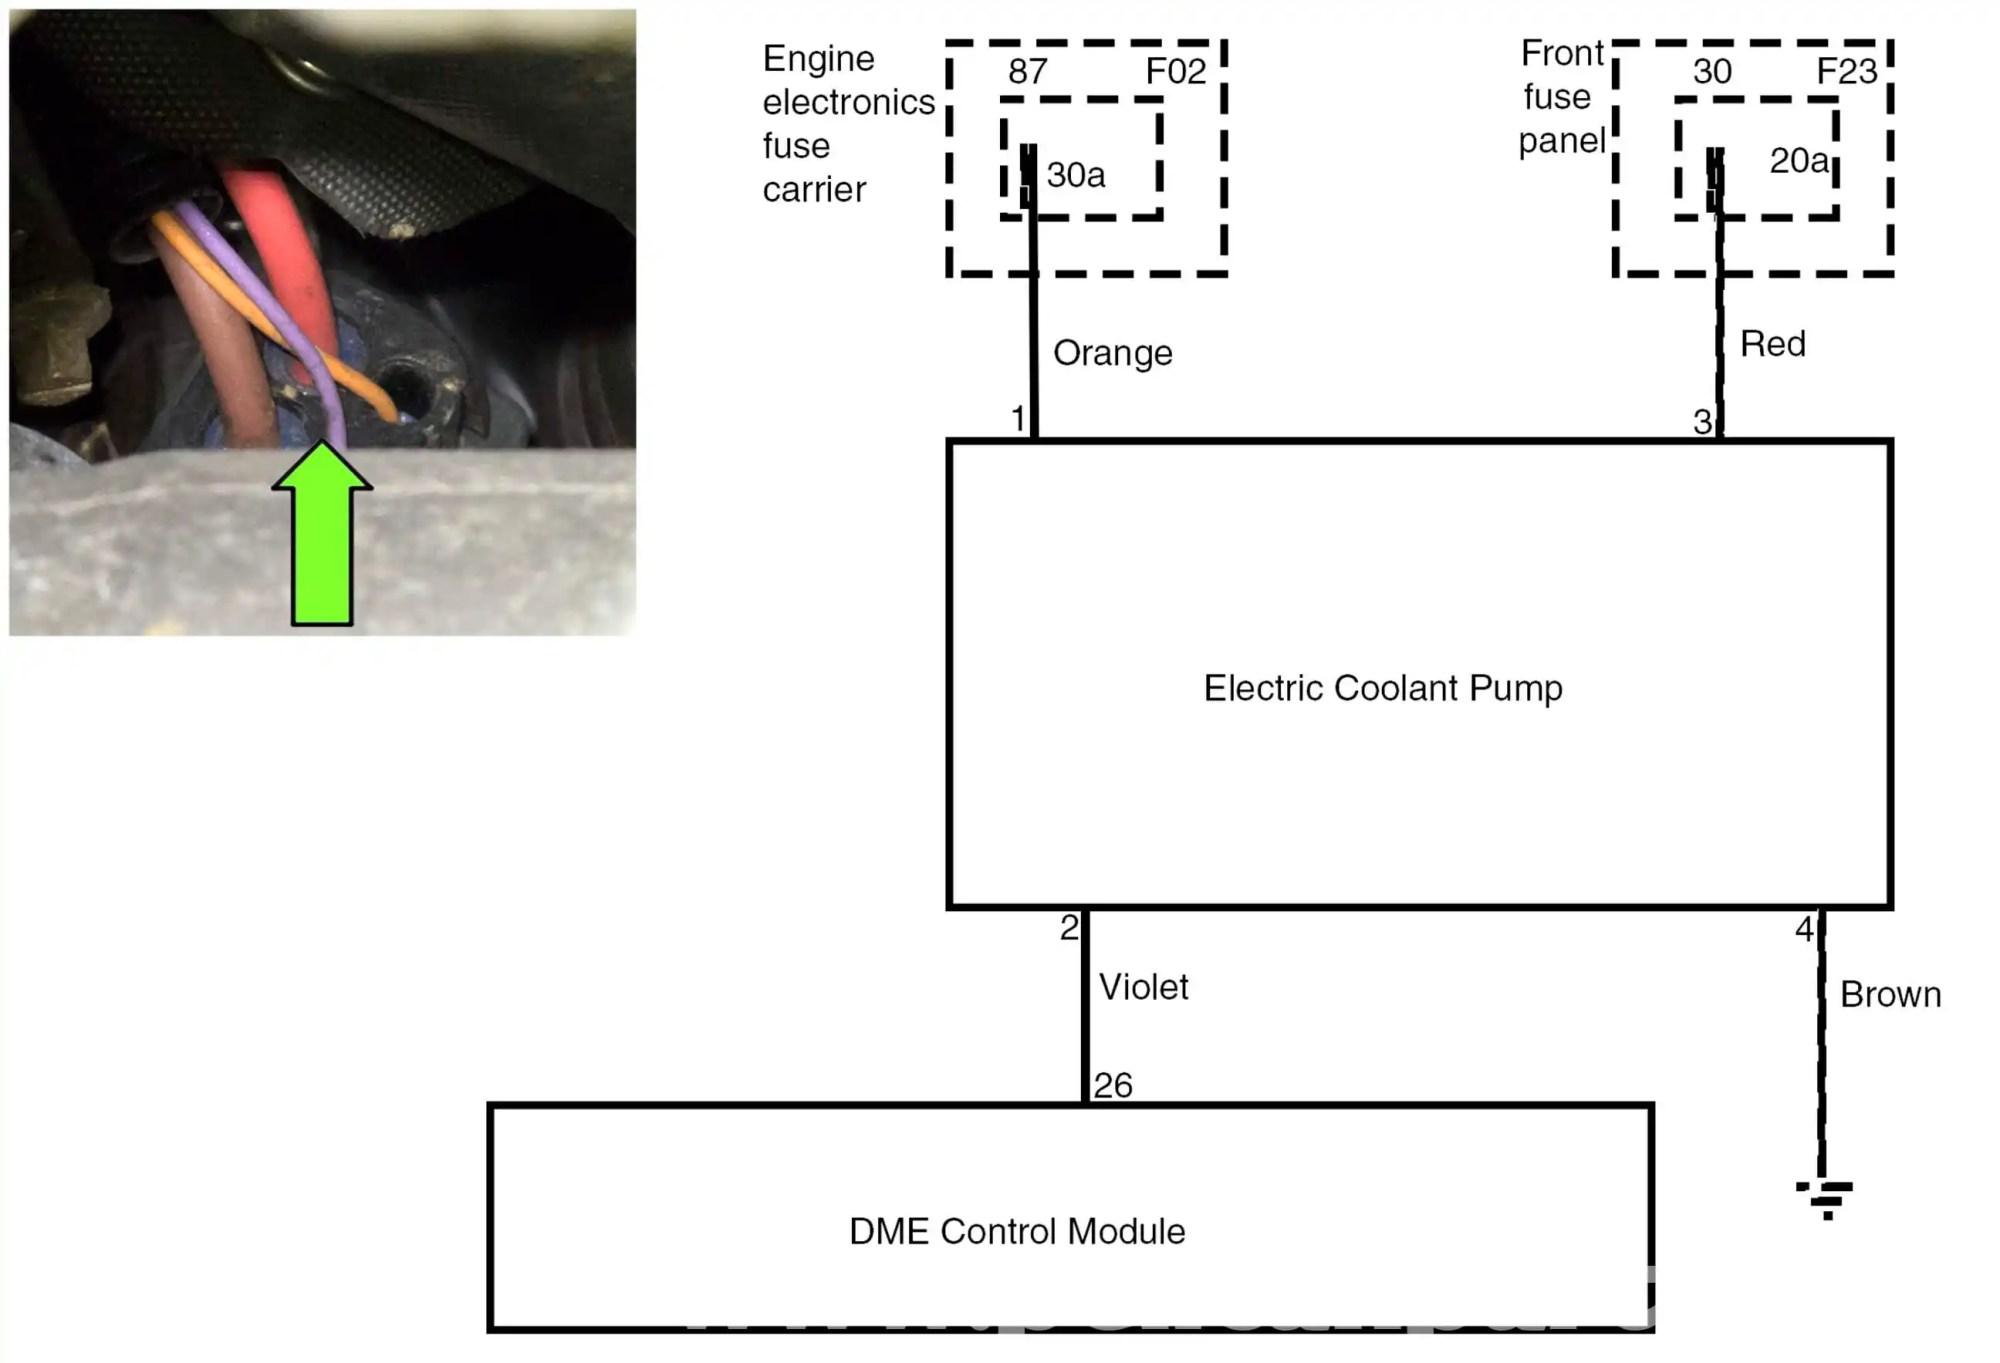 hight resolution of bmw 535i wiring diagram trusted wiring diagram chevy fuel pump wiring diagram fuel pump wiring diagram e60